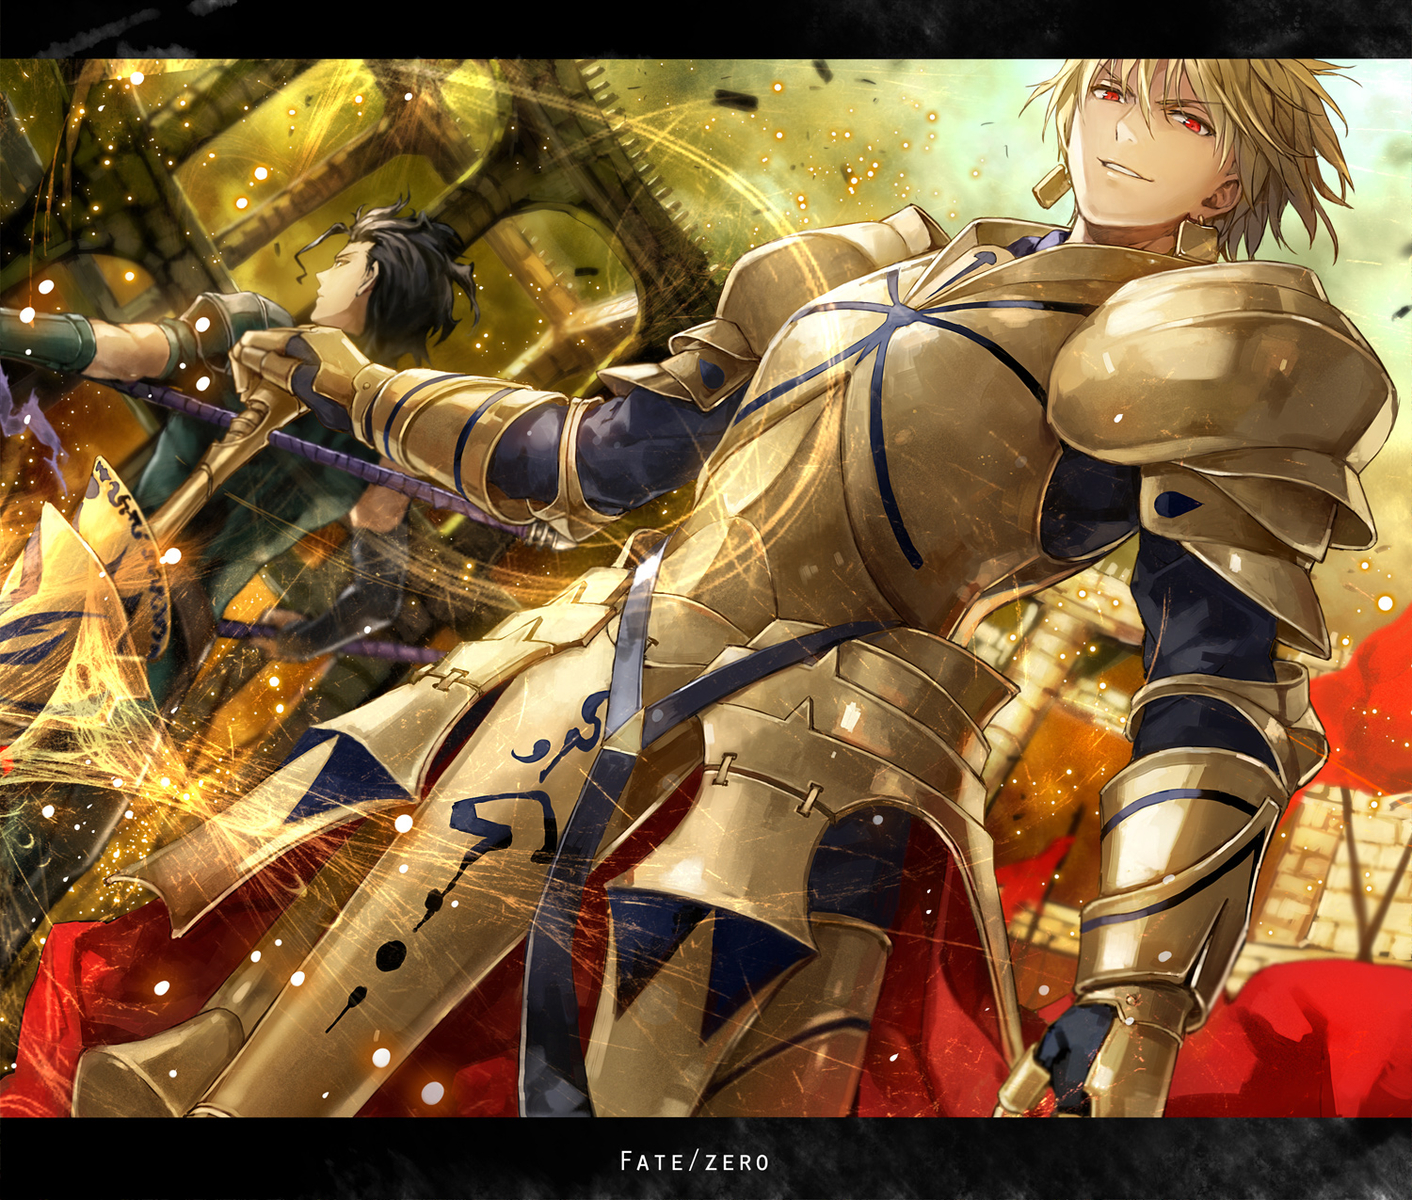 armor blonde_hair diarmuid_ua_duibhne_(fate) fate_(series) fate/stay_night fate/zero gilgamesh komecchi red_eyes spear weapon